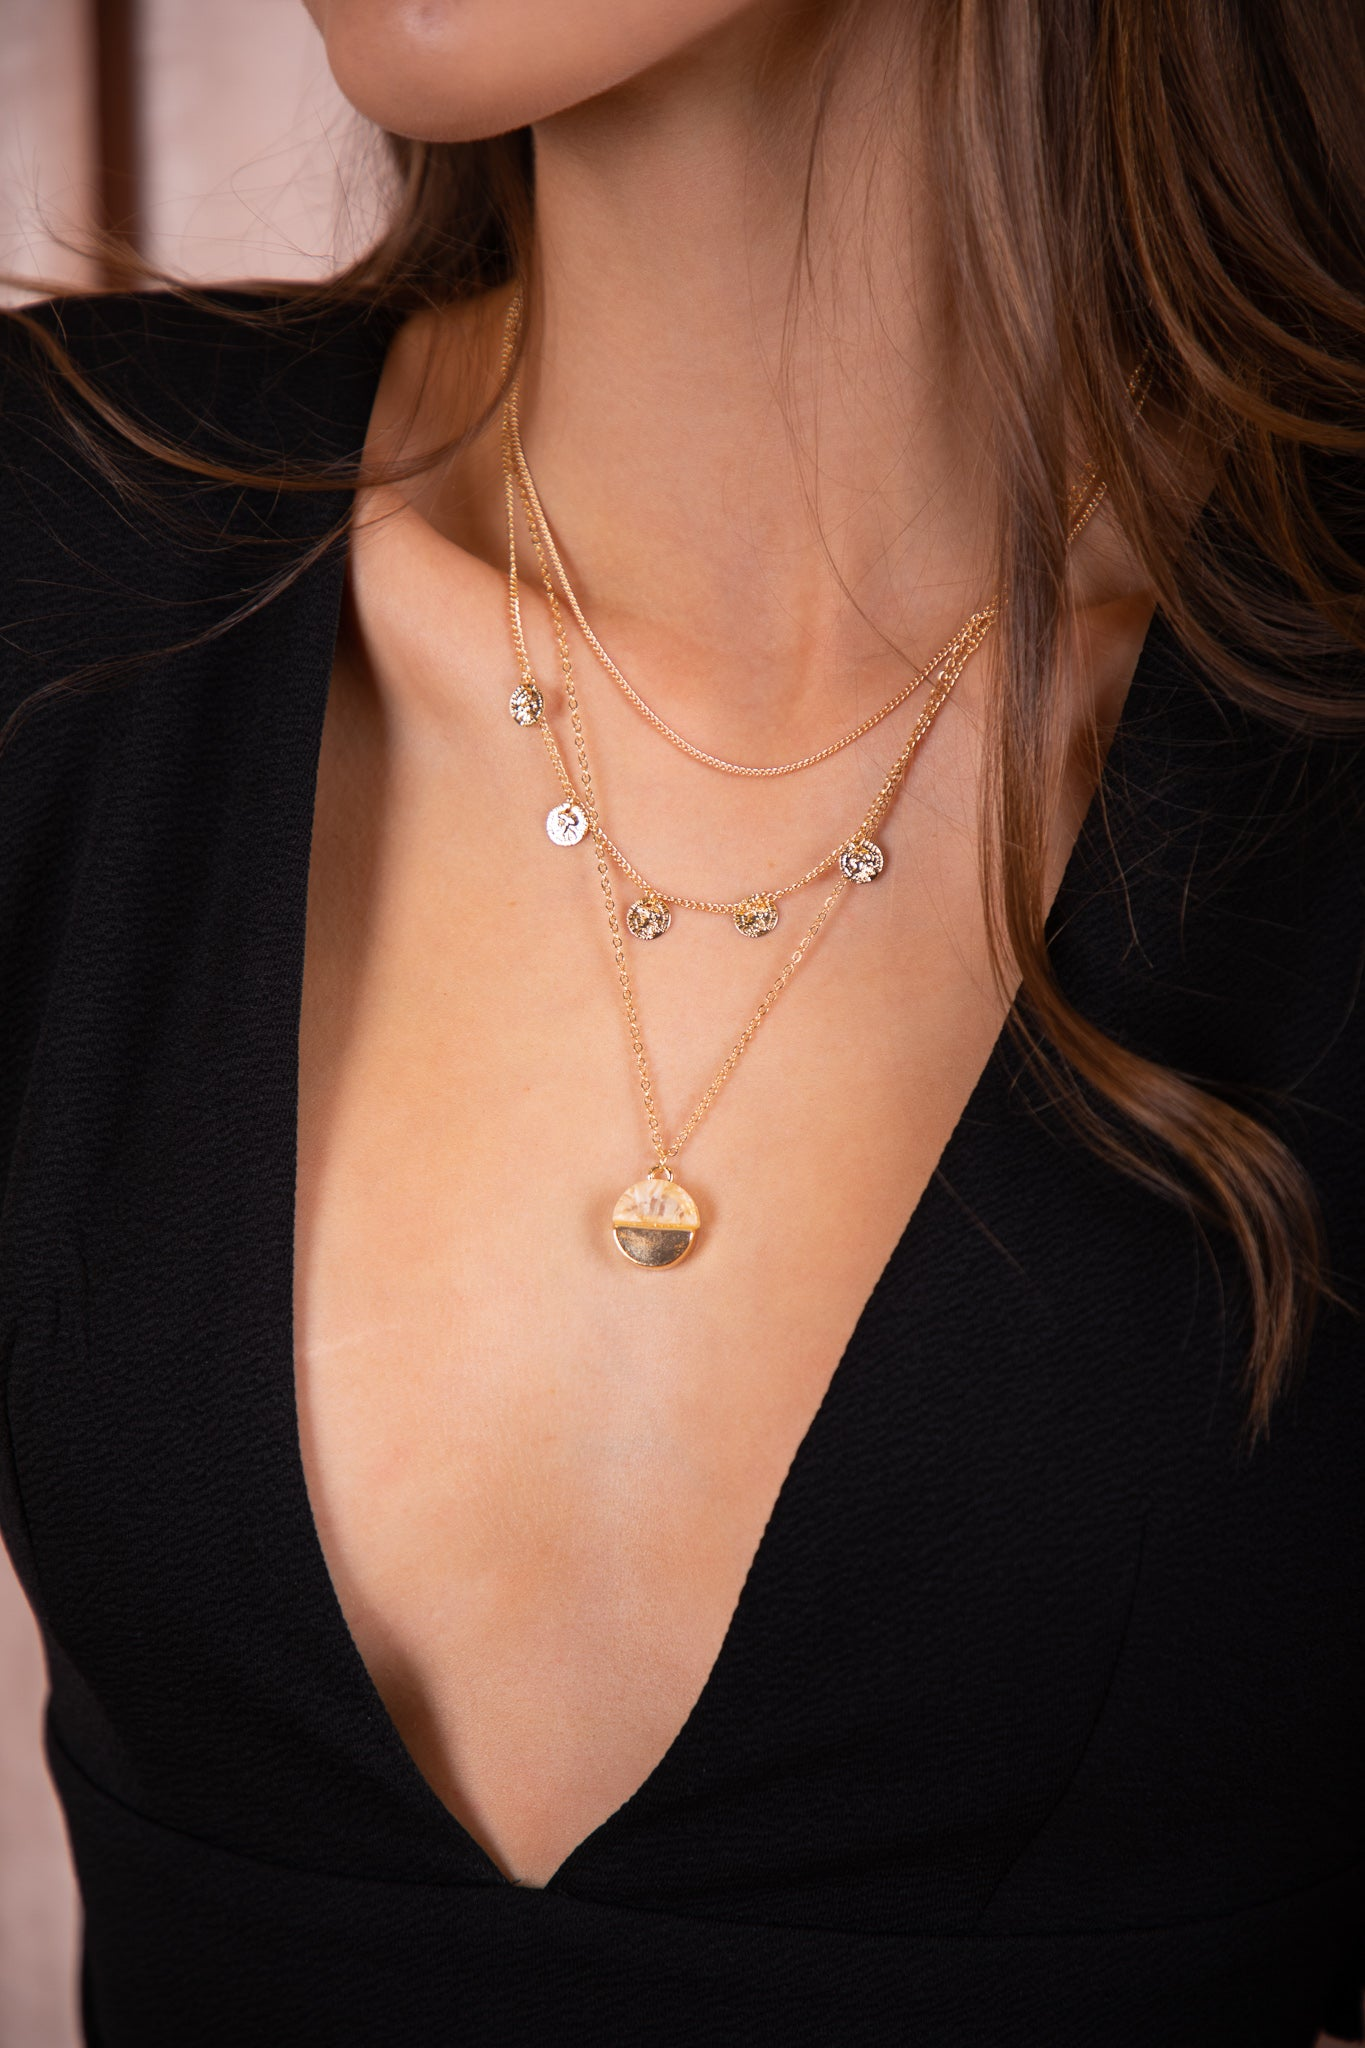 3 tiered gold pendant necklace